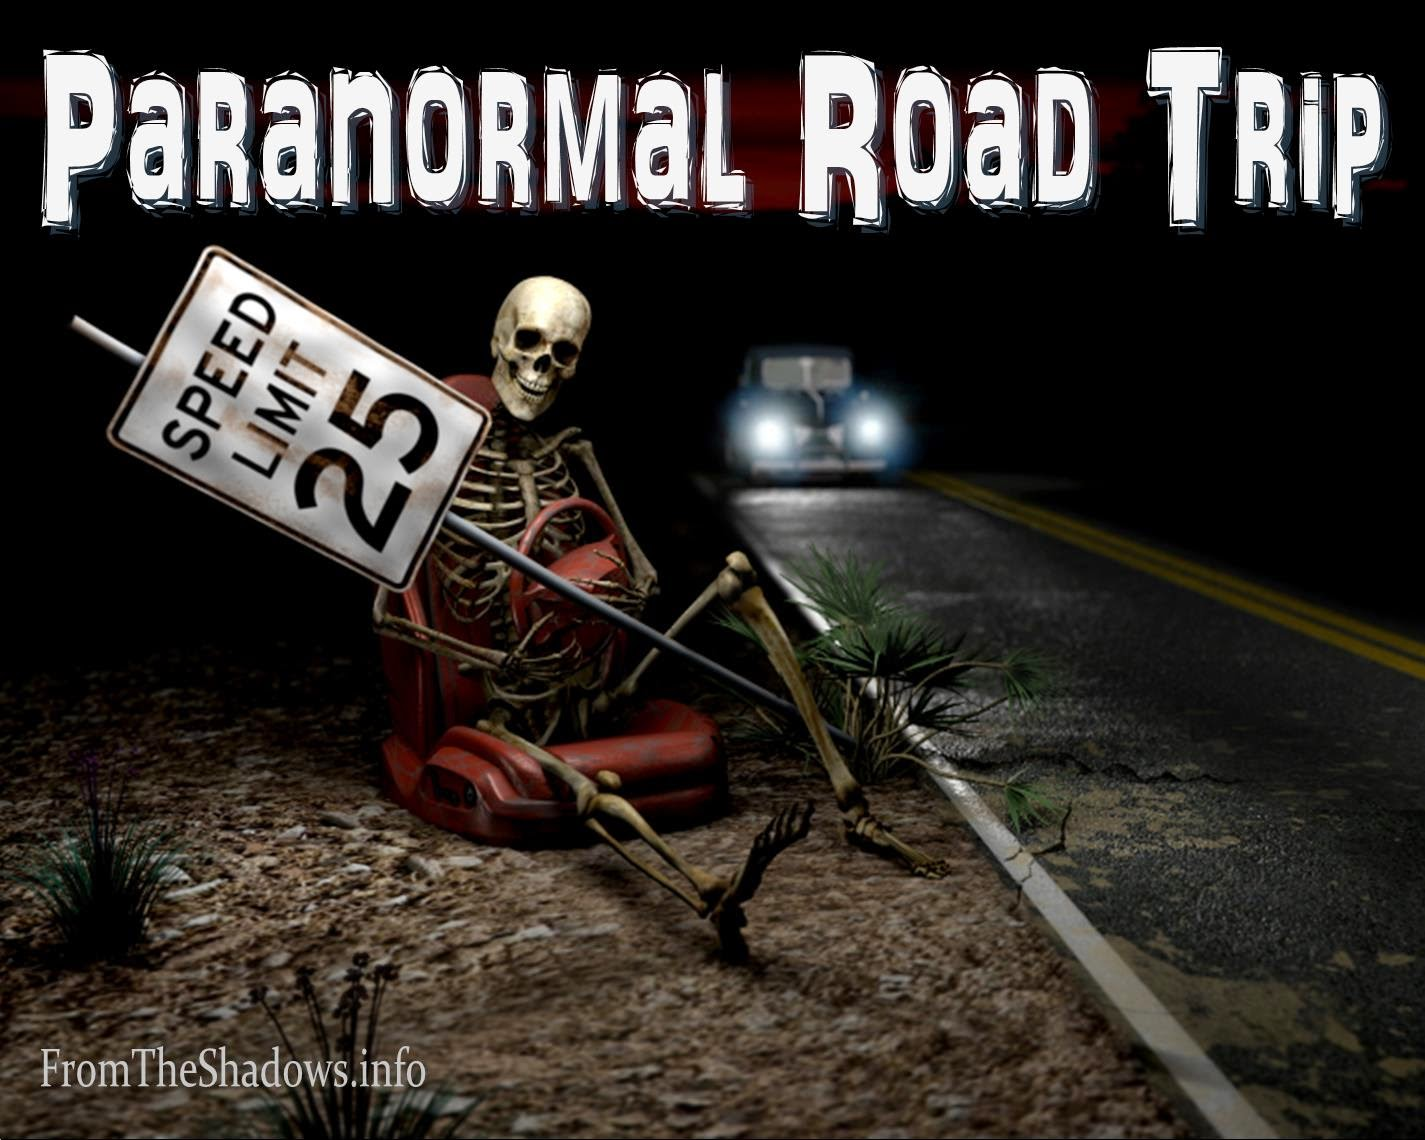 Paranormal Road Trip: Destination Sydney, Australia with Yolanda Sfetsos author of Seirra Fox Urban Fantasy series